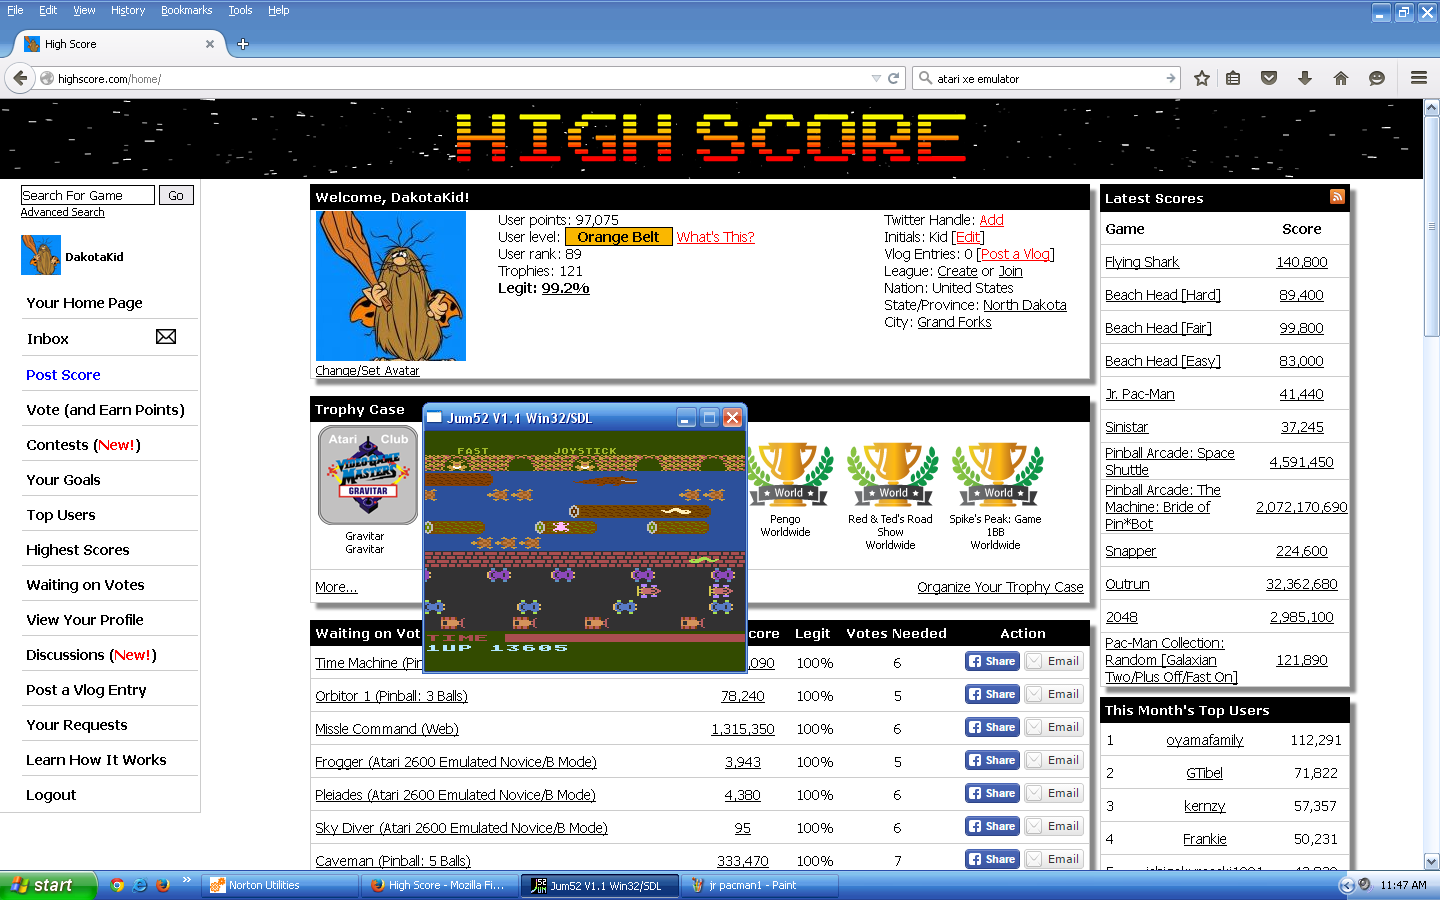 Frogger 13,605 points